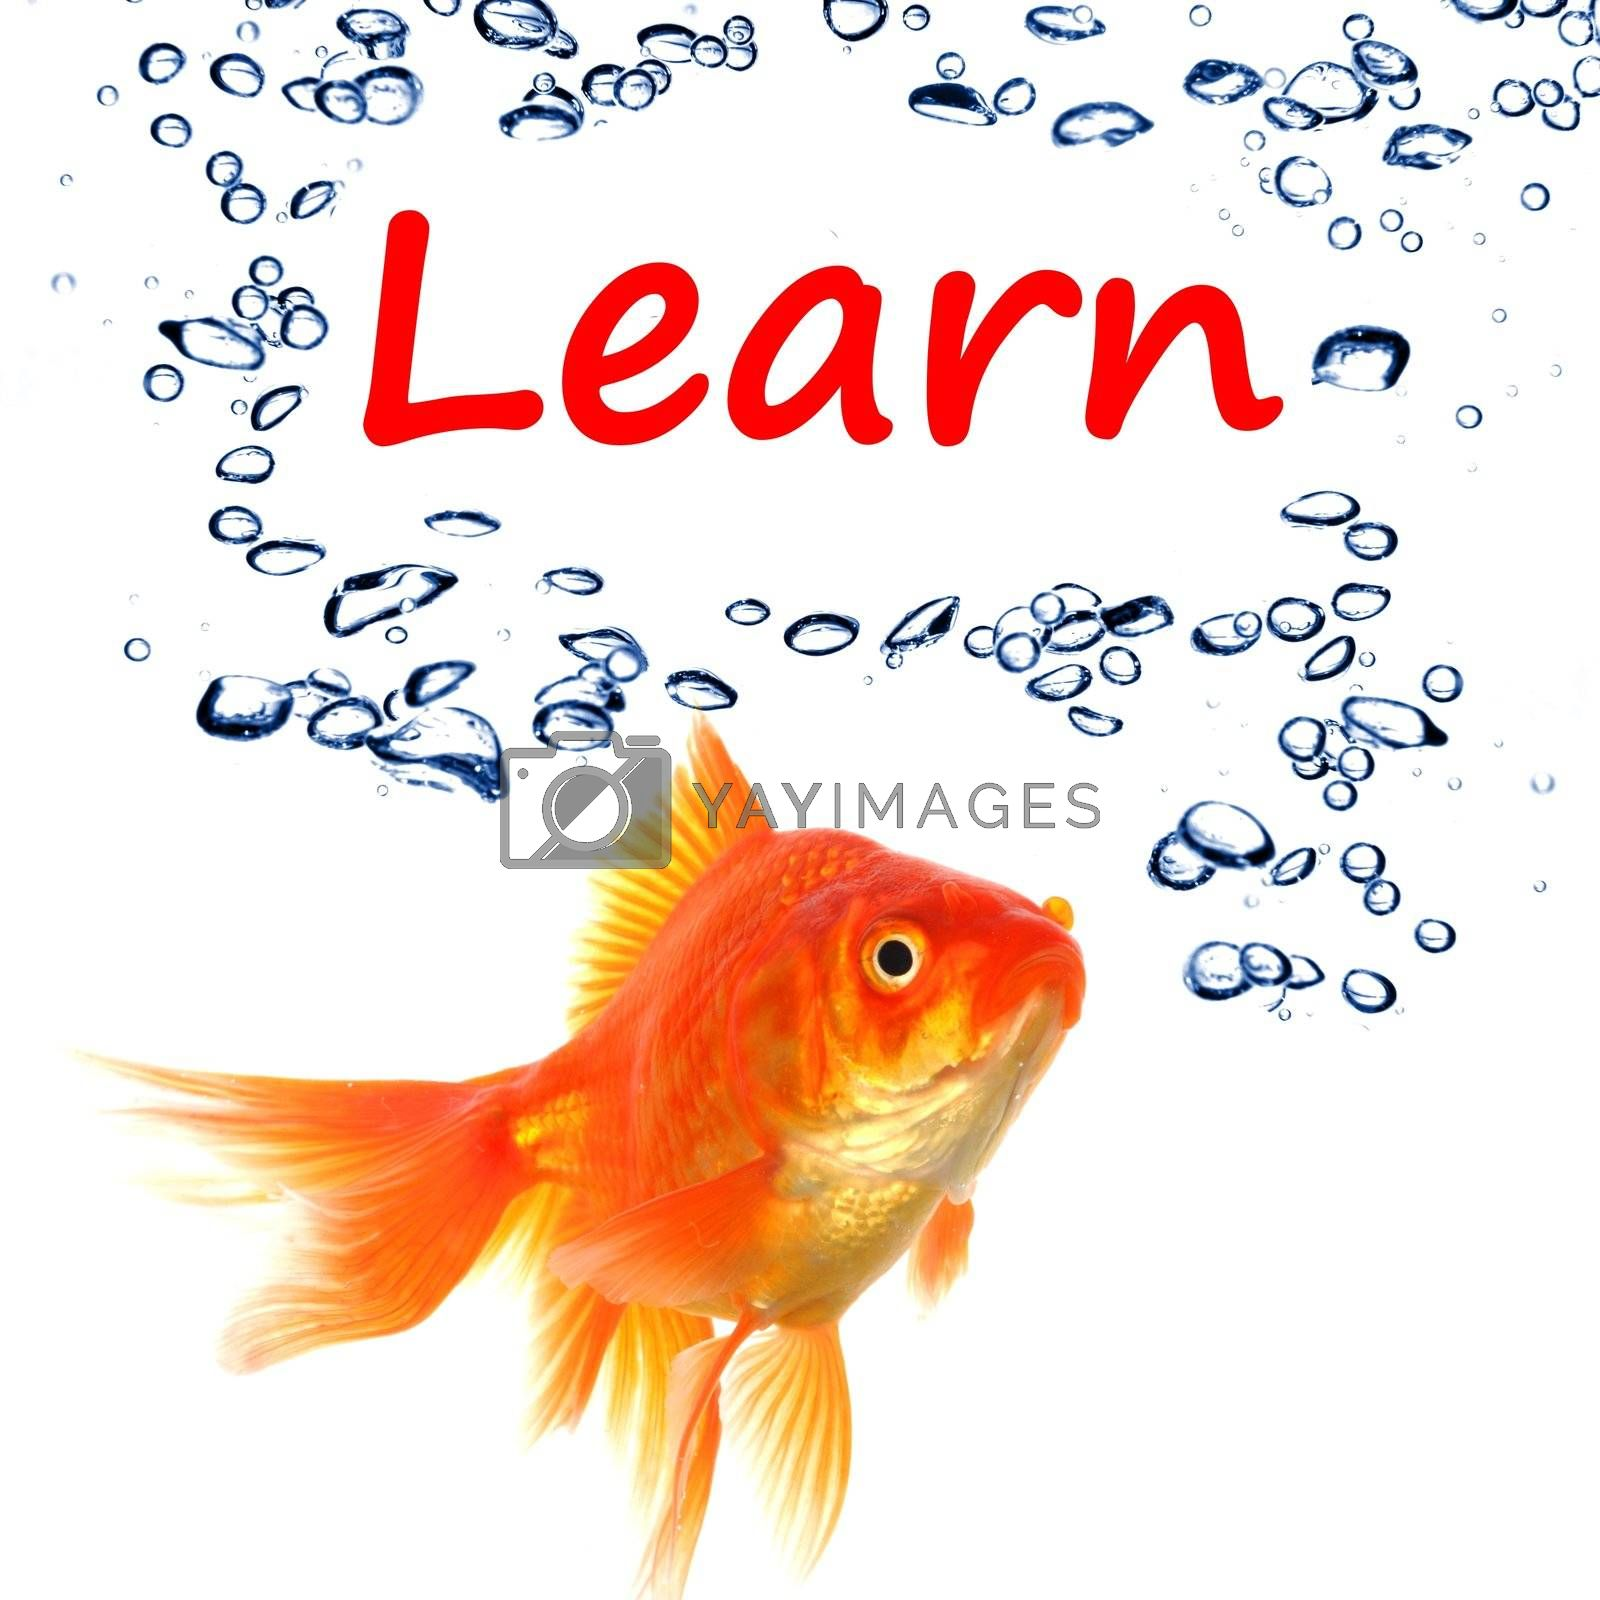 learn word with goldfish showing education concept in white background